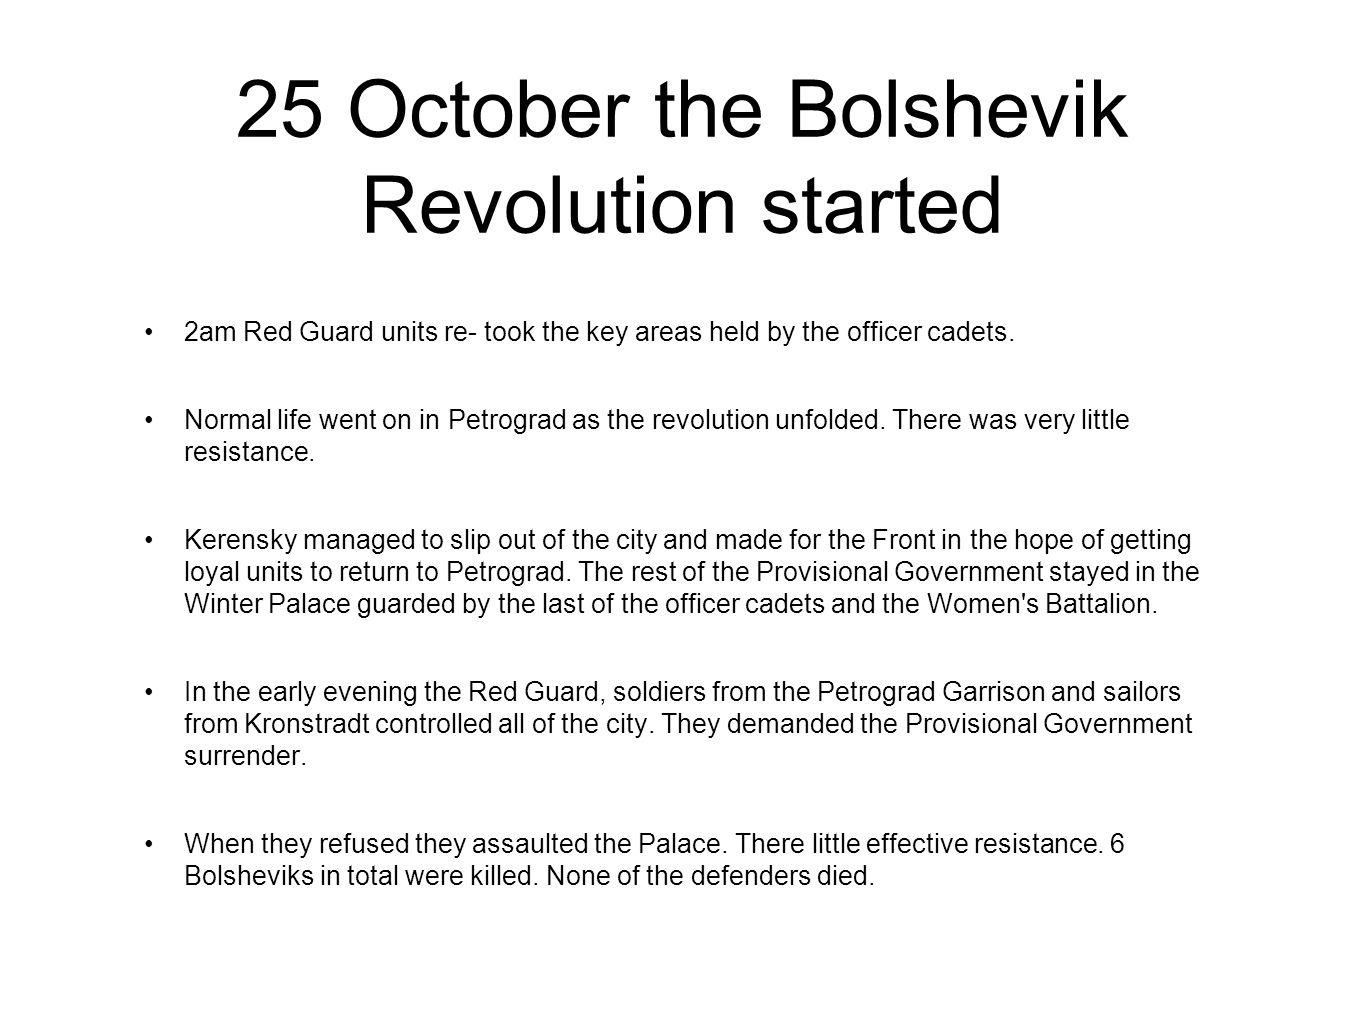 25 October the Bolshevik Revolution started 2am Red Guard units re- took the key areas held by the officer cadets.